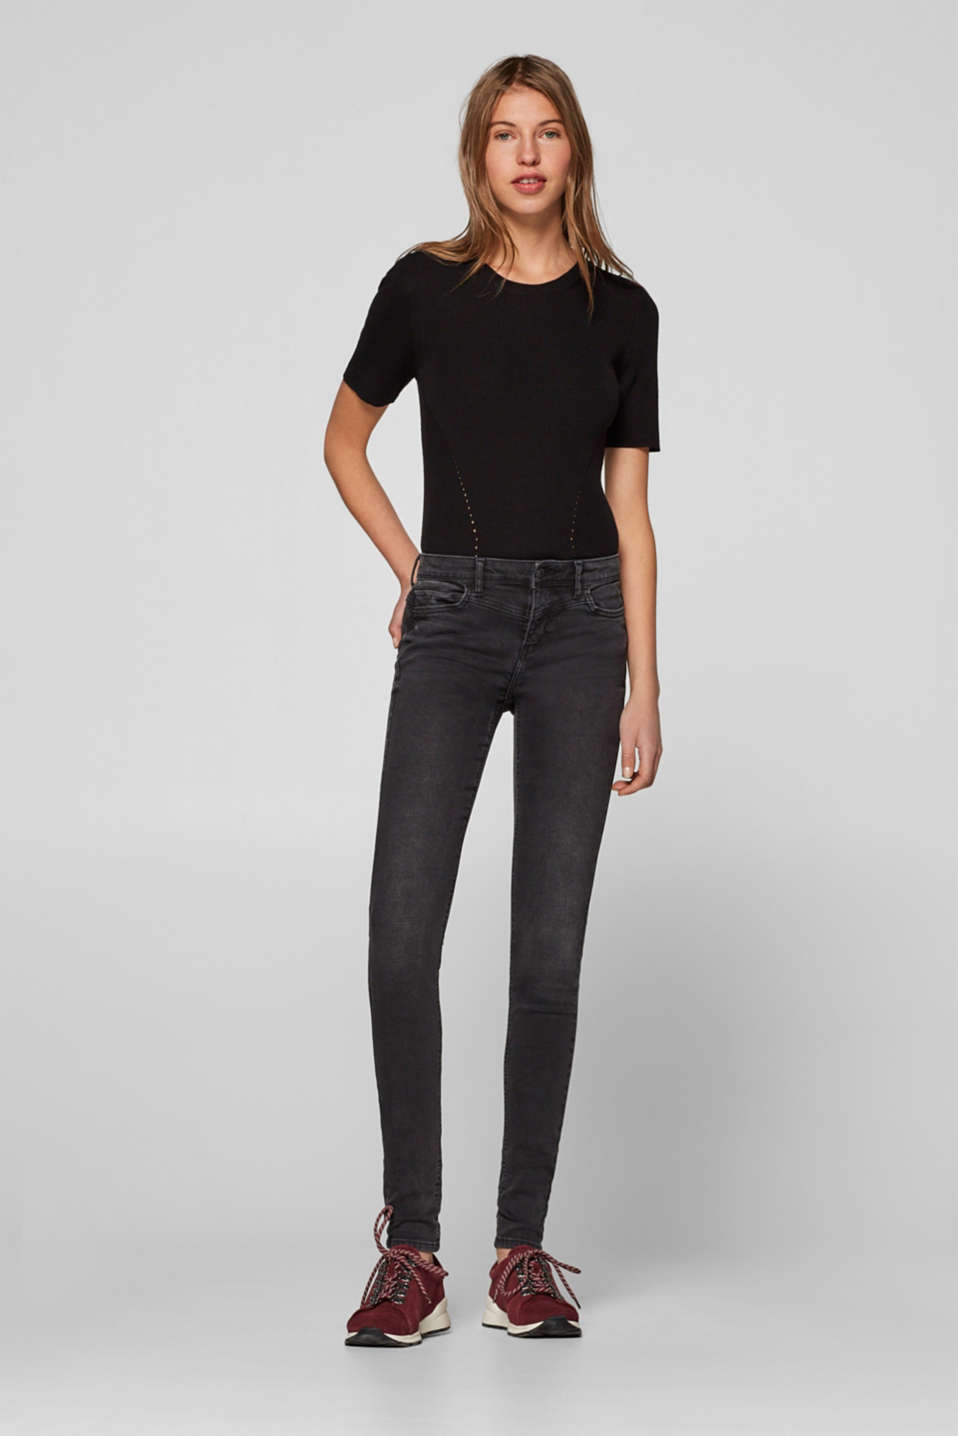 Esprit - Stretch jeans with figure-enhancing waist seams